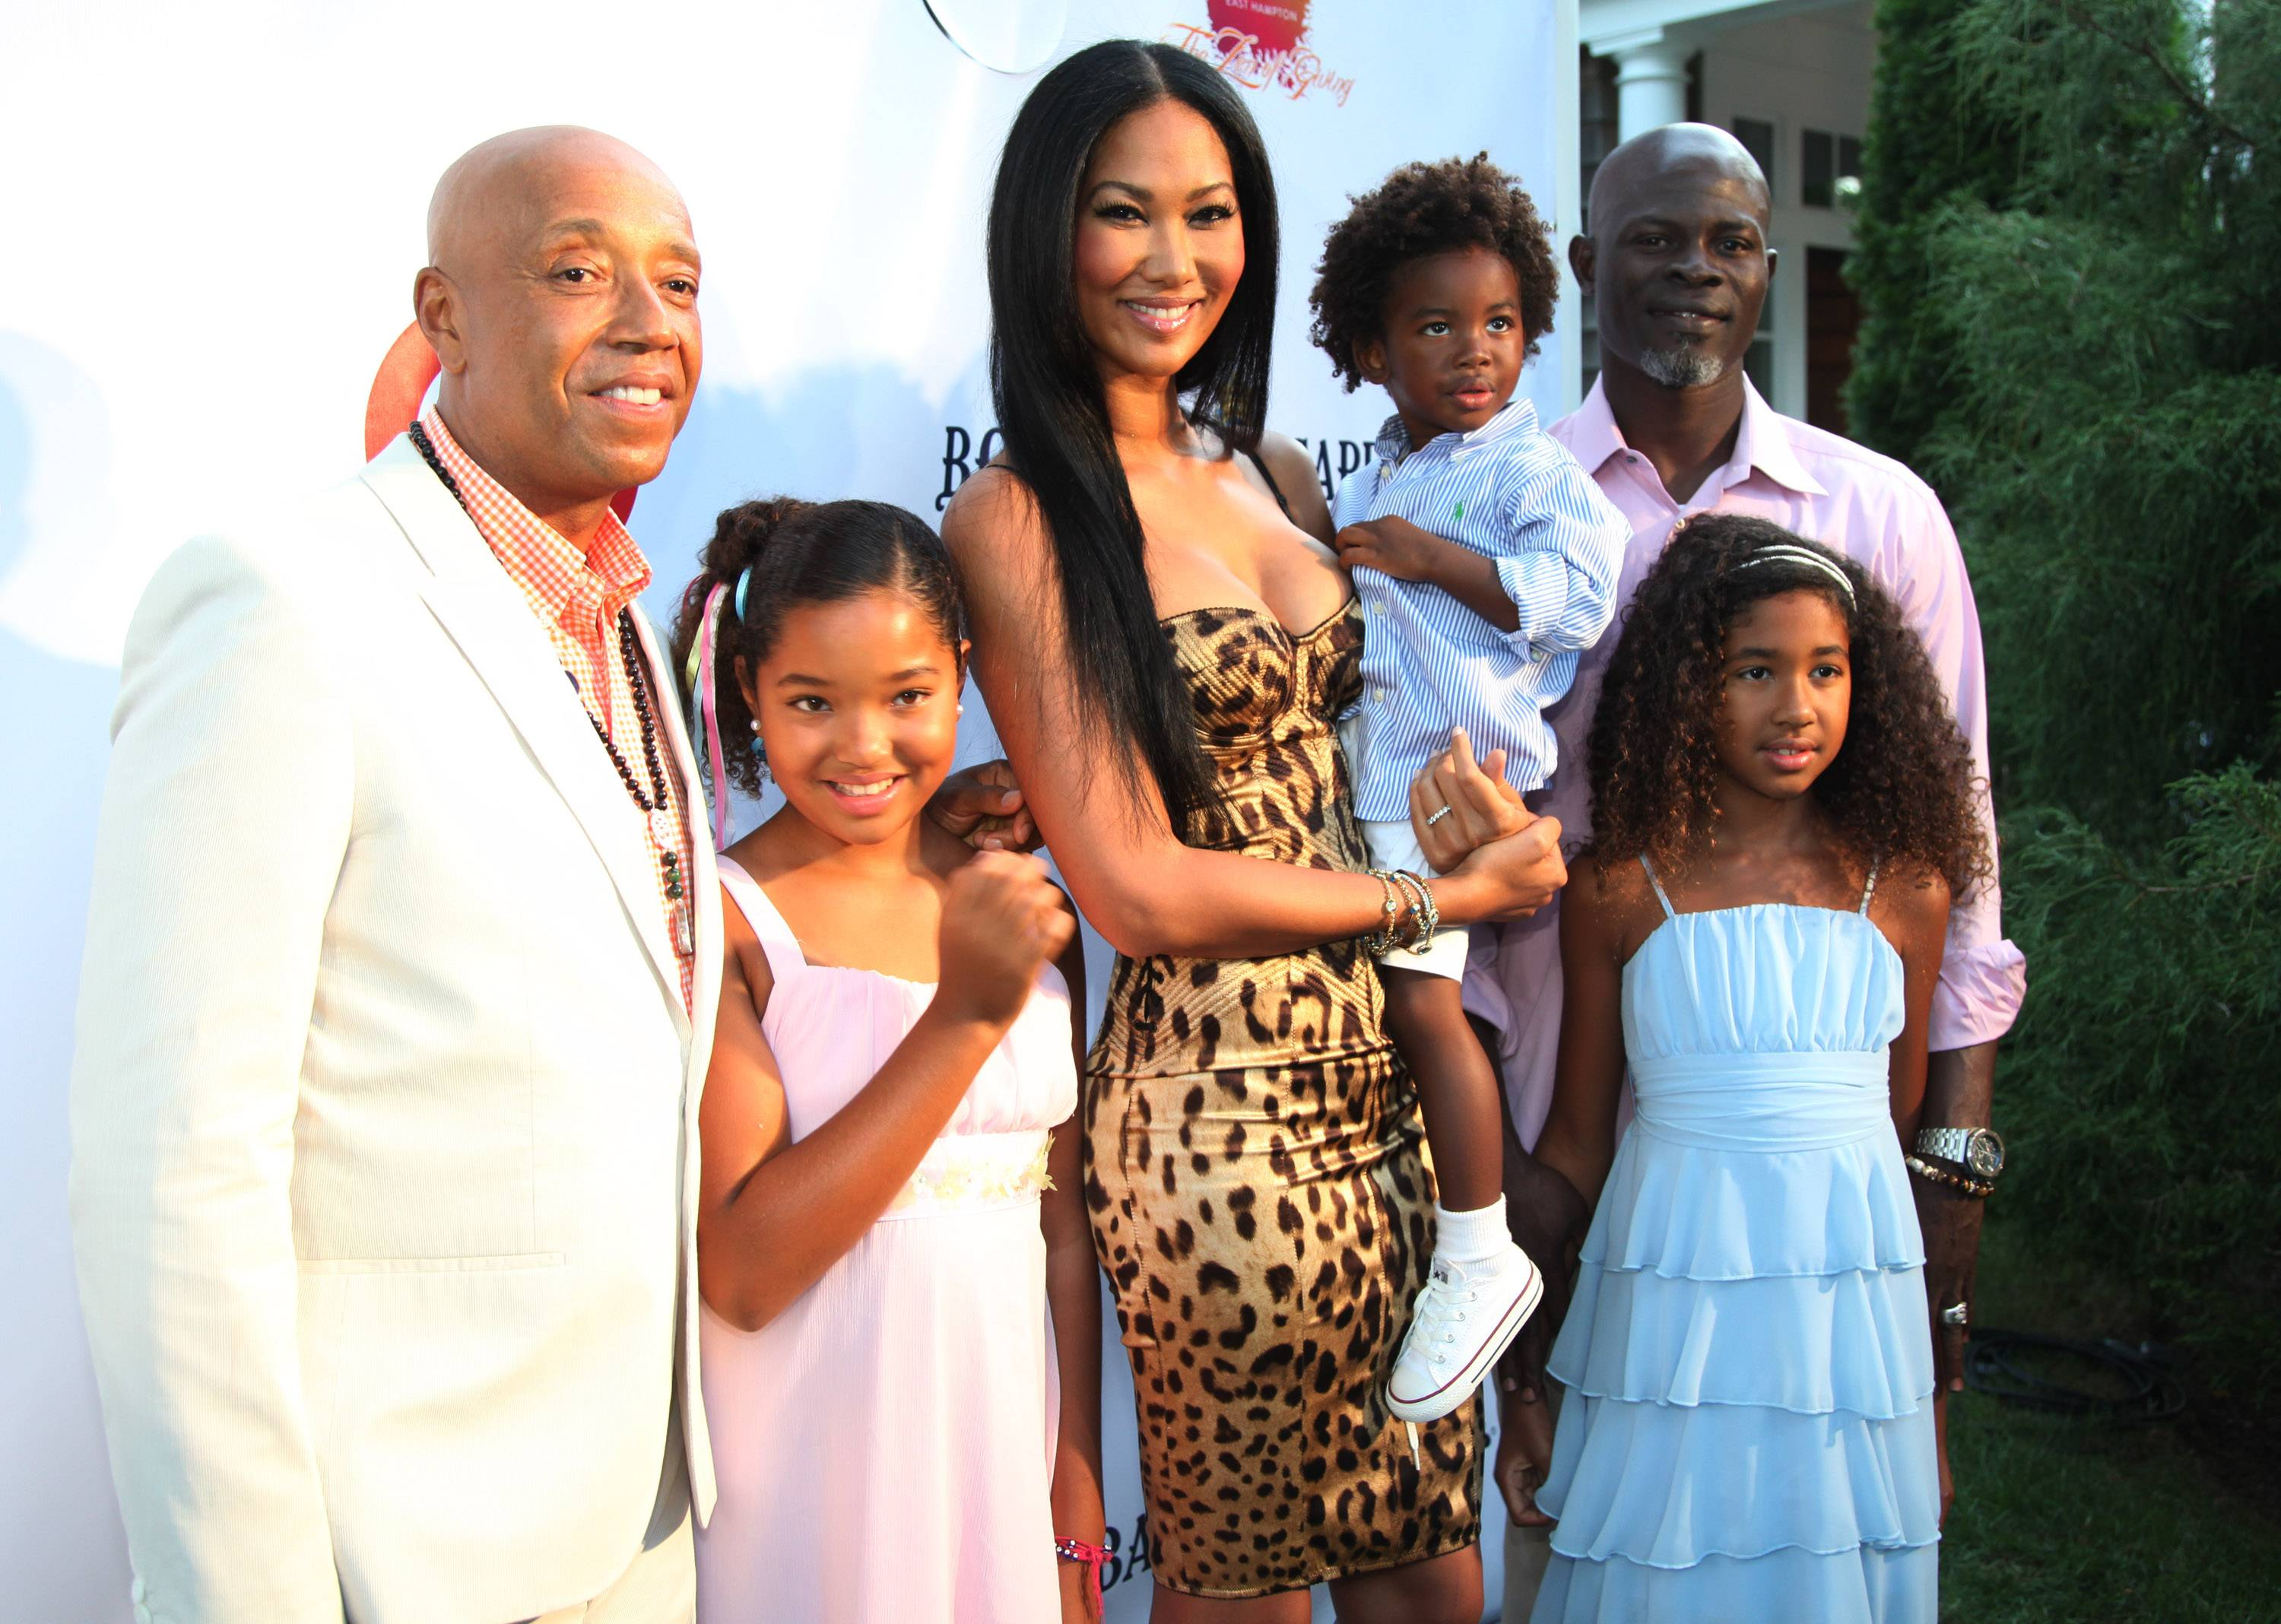 Russell Simmons Hosts Art For Life Benefit at His East Hampton Estate